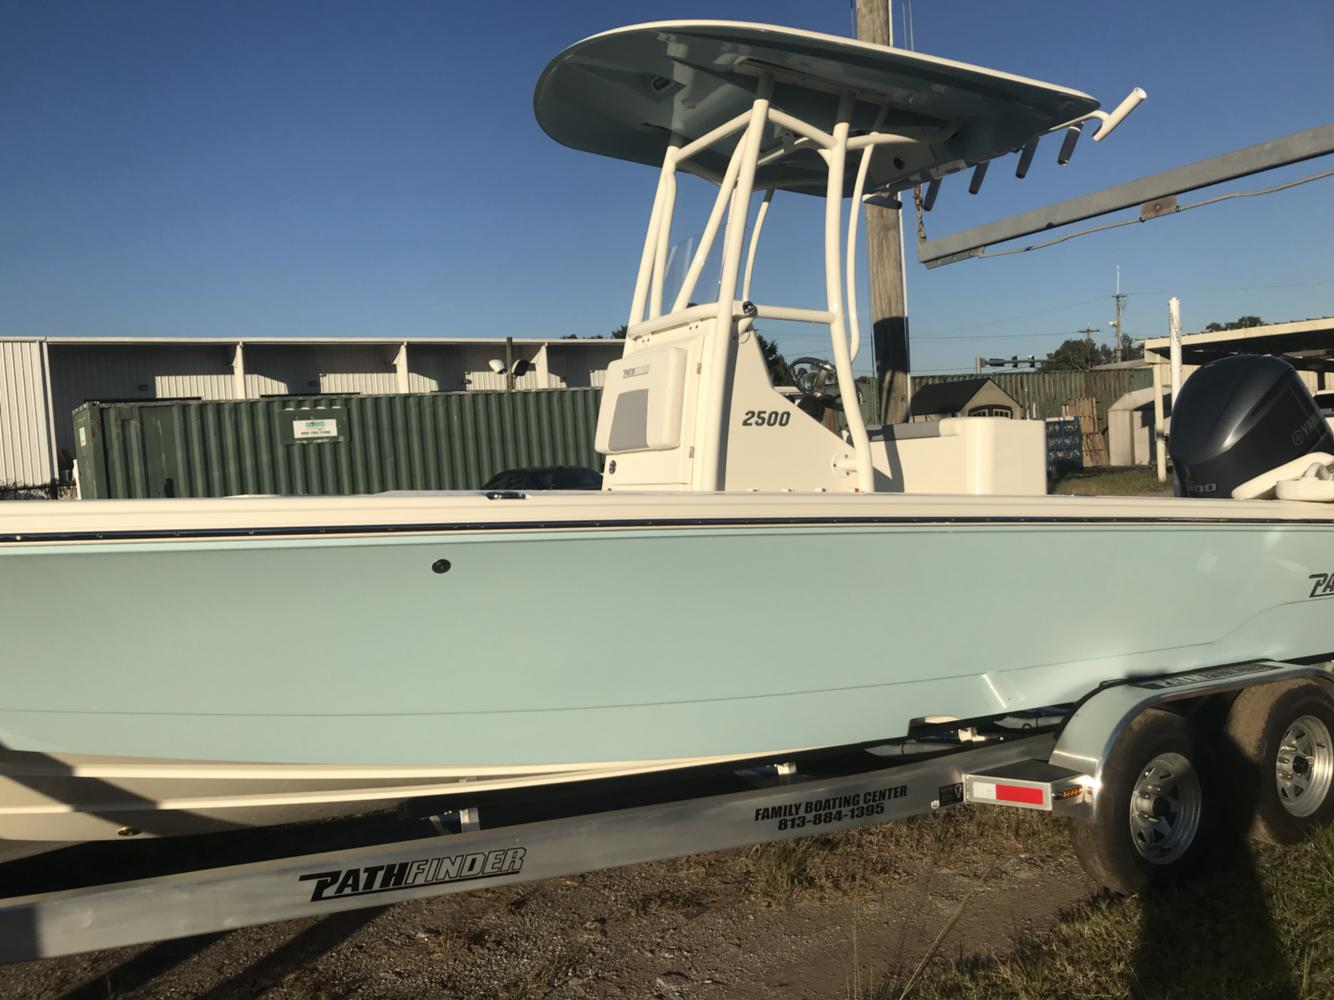 2019 Pathfinder 2500 Hps Hybrid For In Tampa Fl Family Boating Northwest 813 884 1395